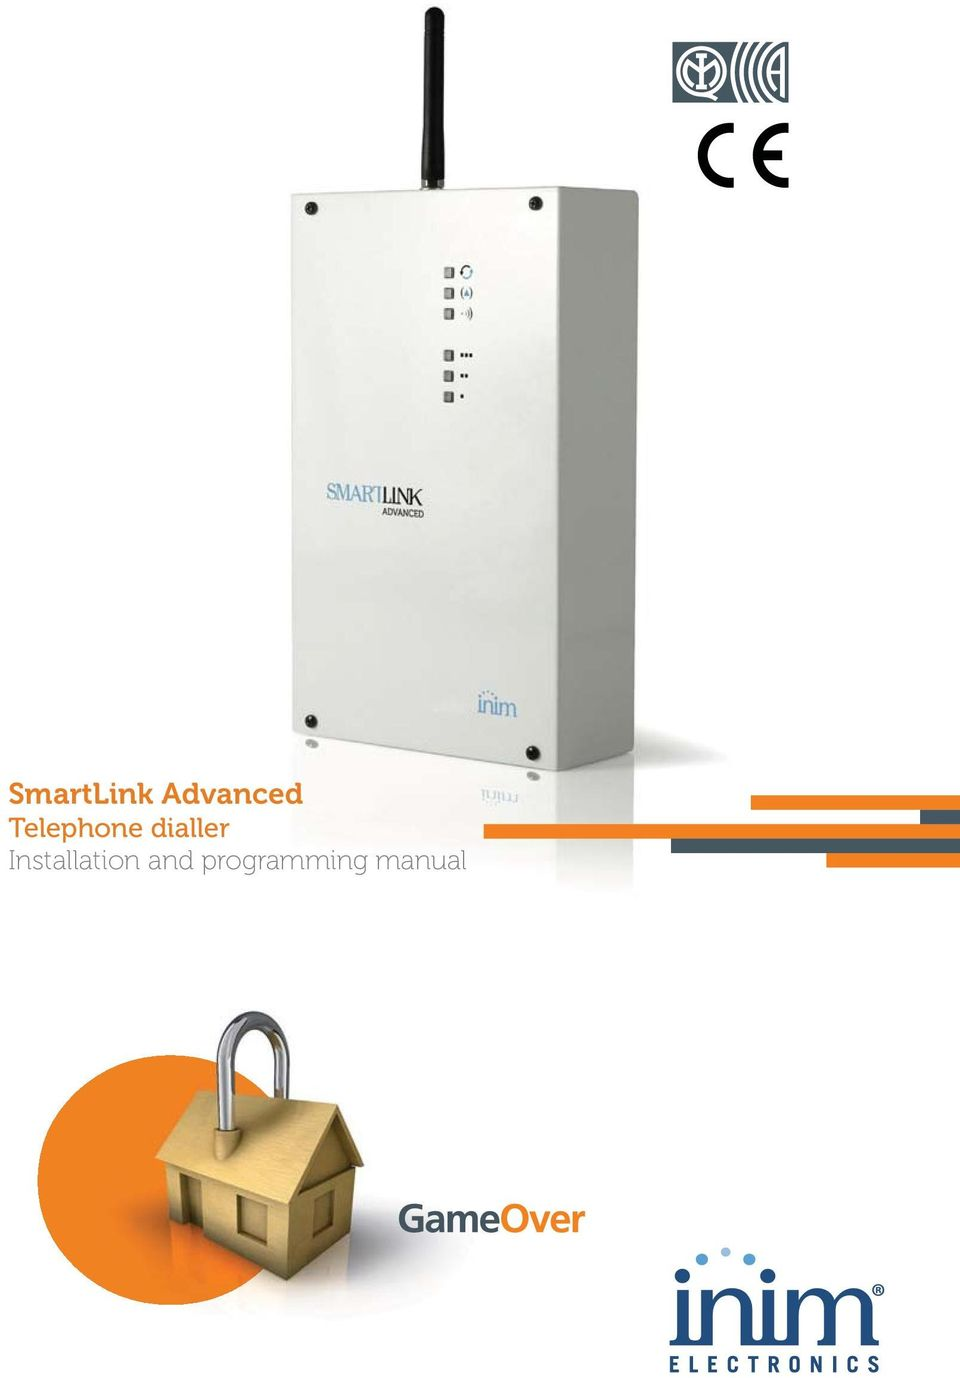 SmartLink Advanced